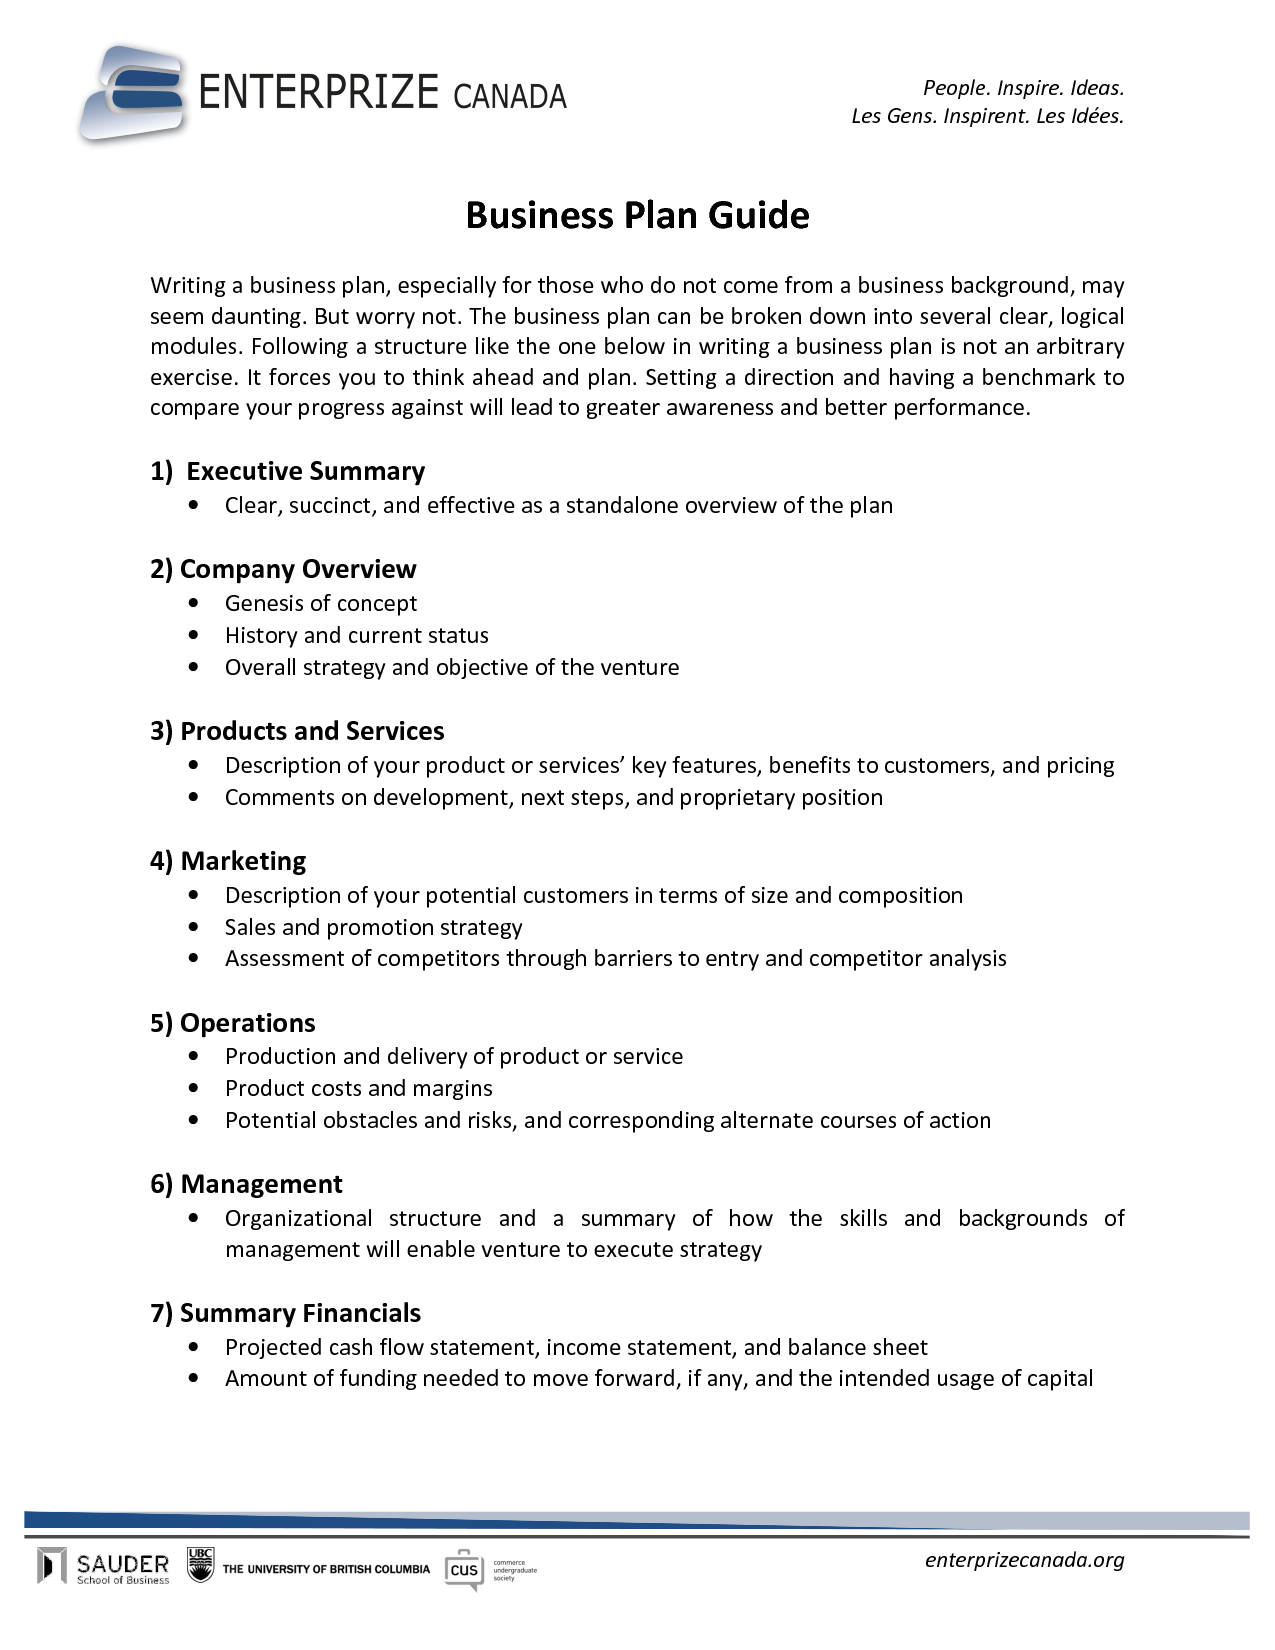 Example of a business plan outline engneforic example of a business plan outline business plan format dzeo tk example of a business plan outline cheaphphosting